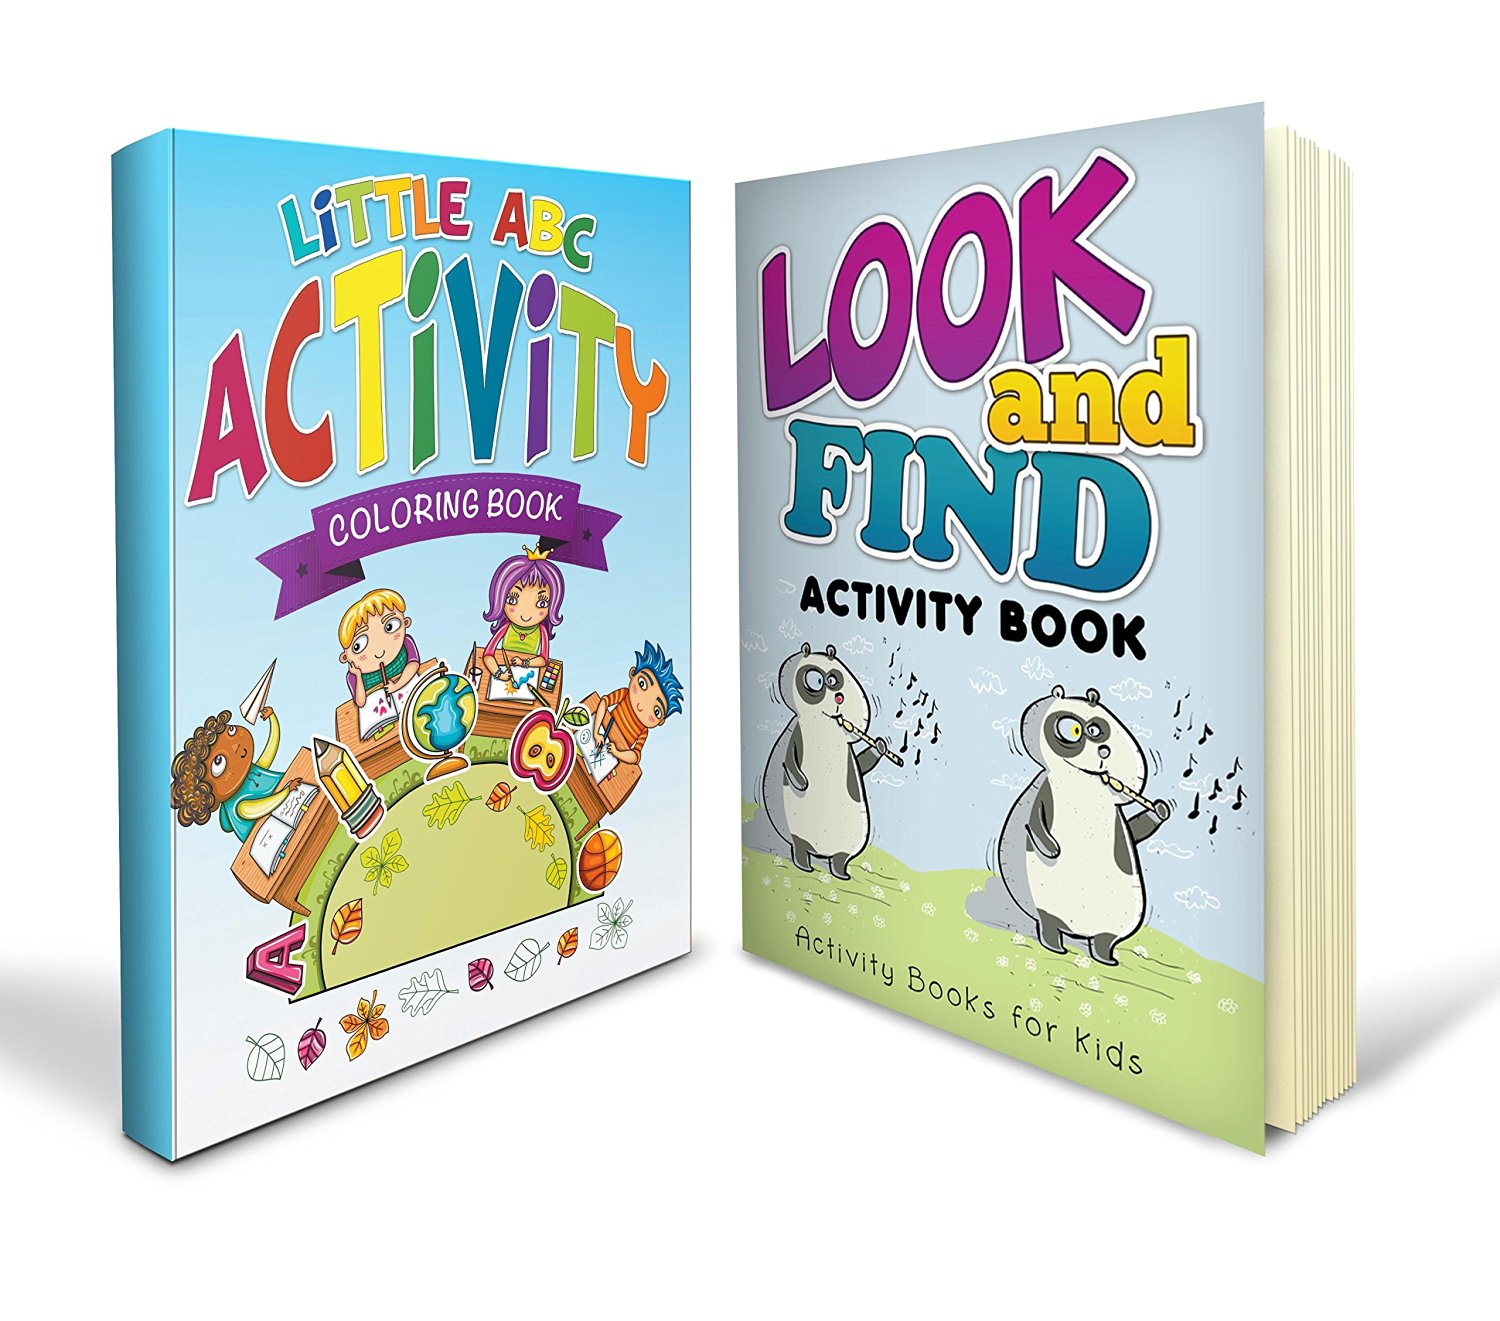 Activity Books For Toddlers Bundle with a Little ABC Activity Coloring Book and Look and Find Book with over 100 Alphabet and Seek and Find Learning Pages Absolutely Mom Approved